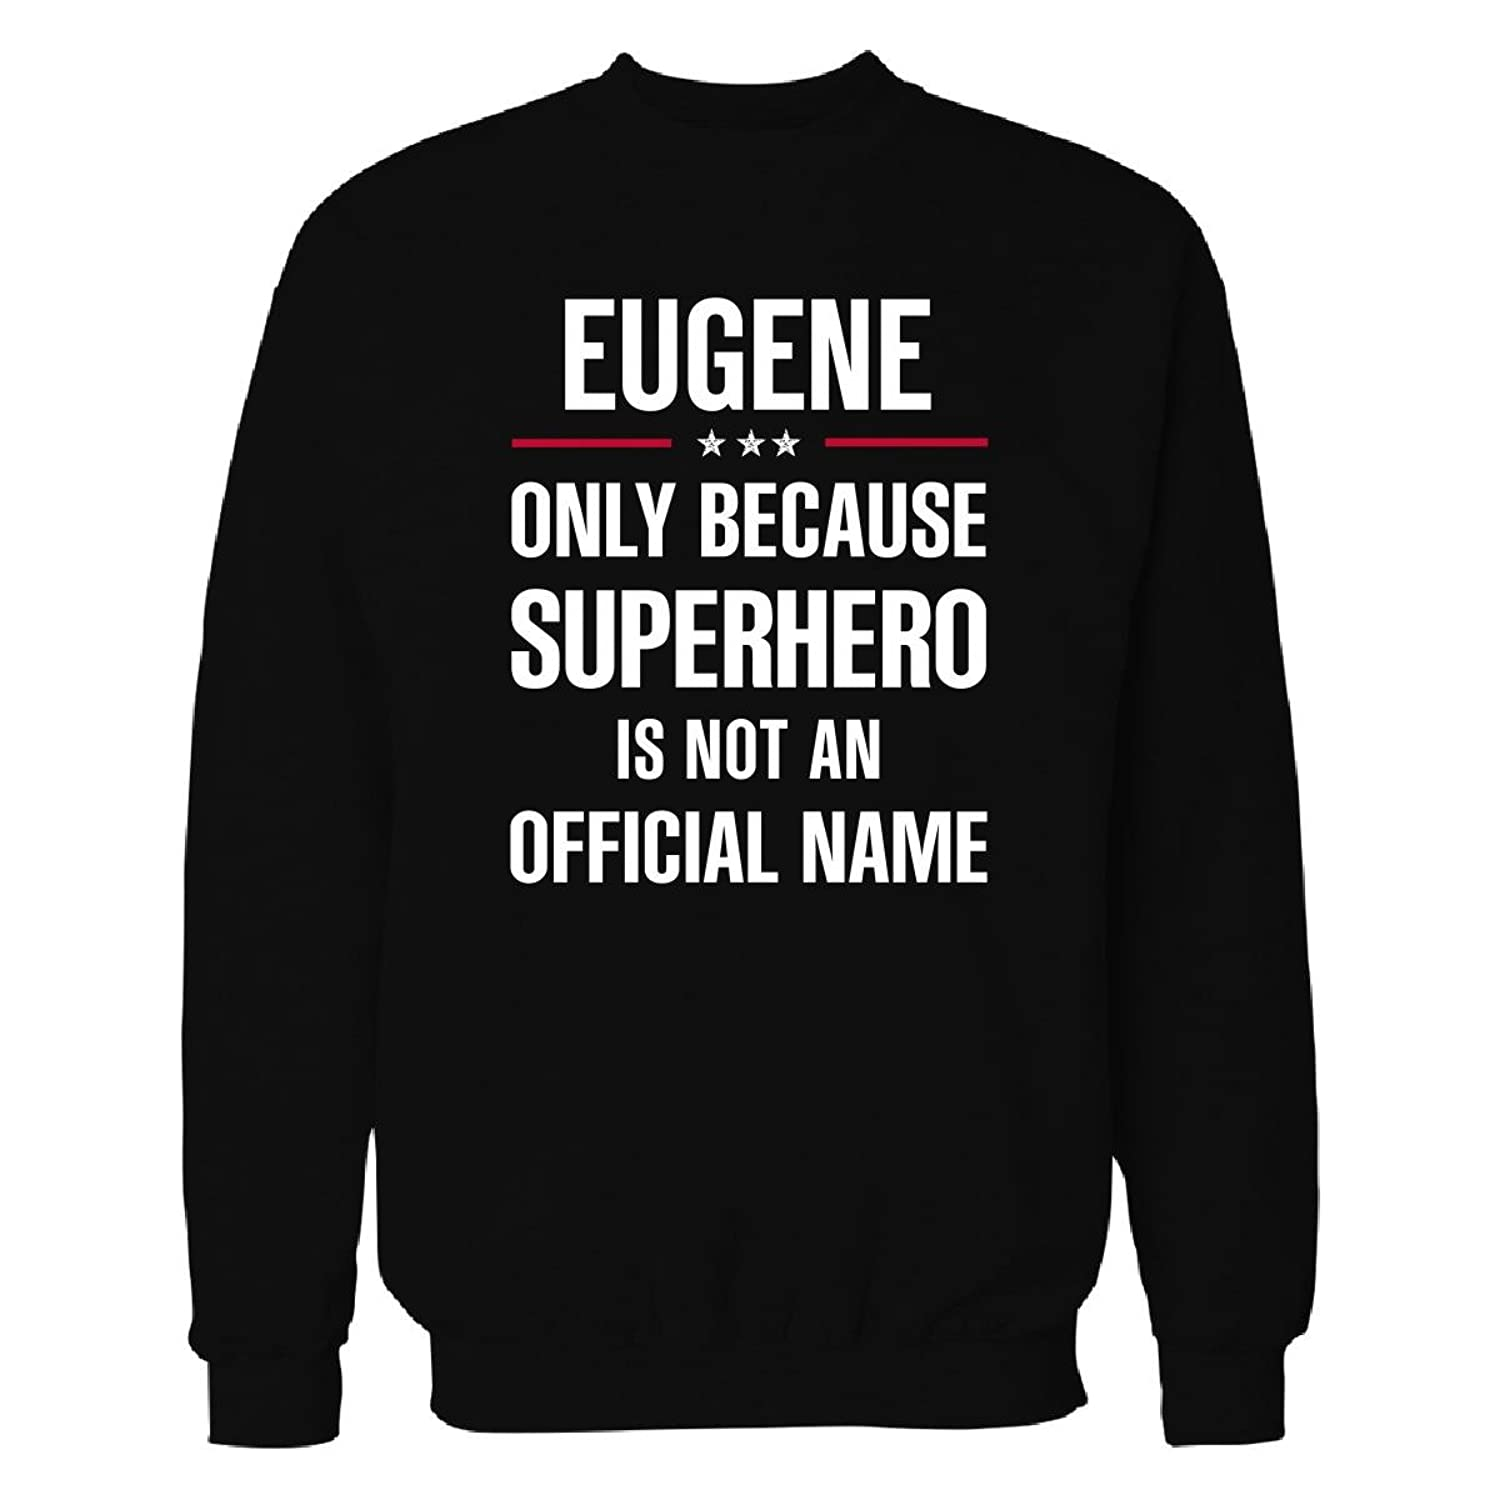 What is the name Eugene